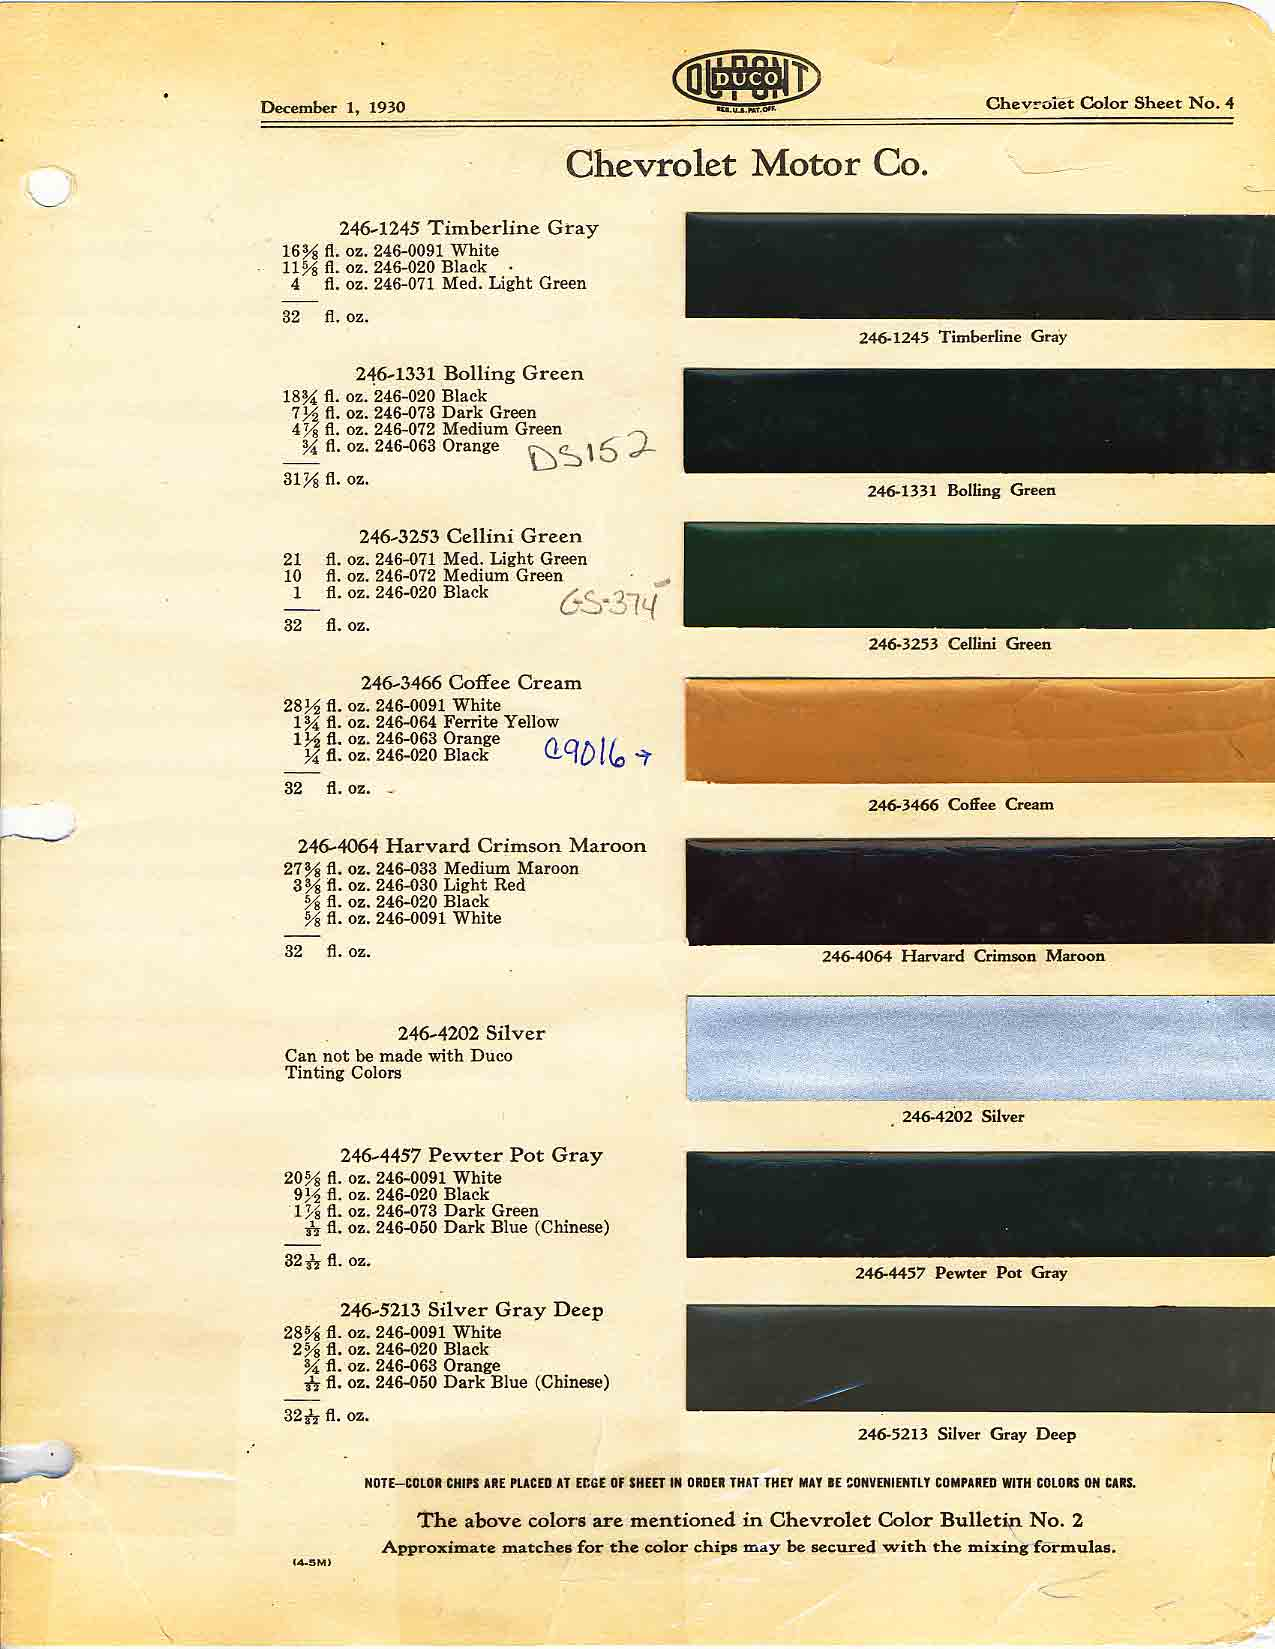 Paint Codes and Color Swatches used by Chevrolet on Vehicles